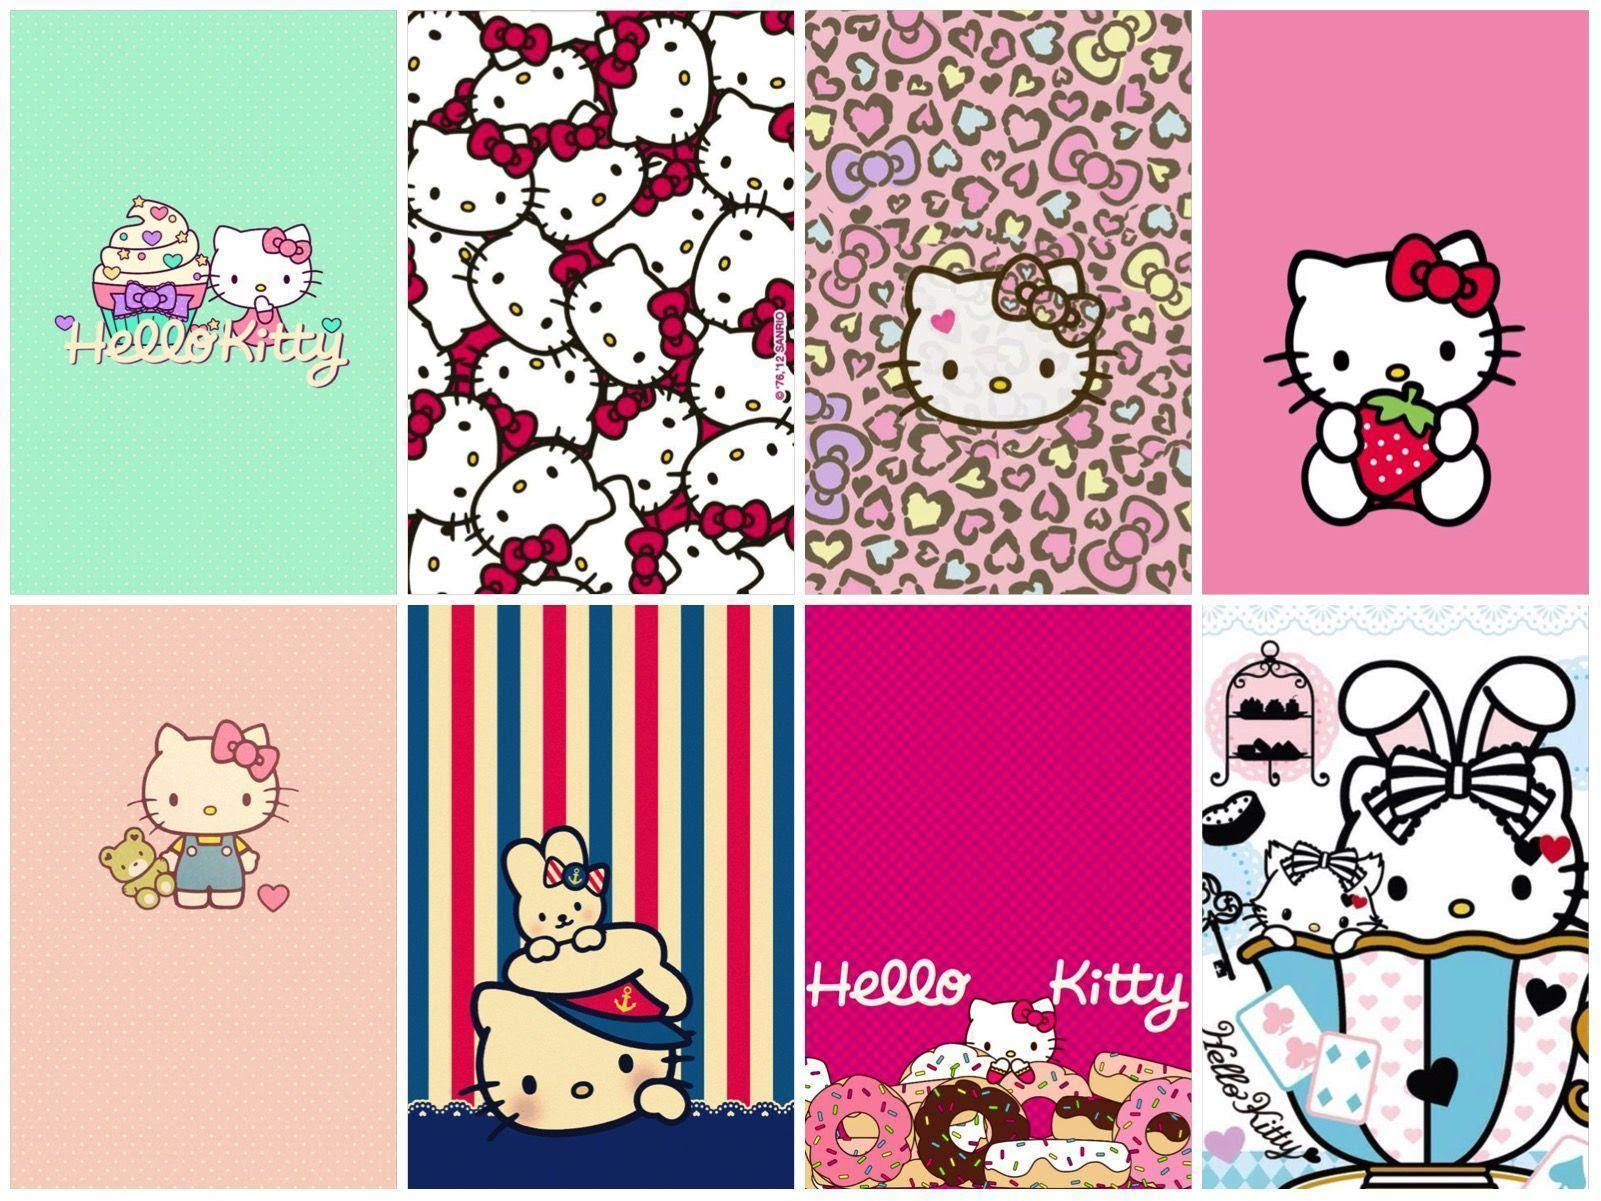 Hello Kitty Wallpapers 2016 - Wallpaper Cave